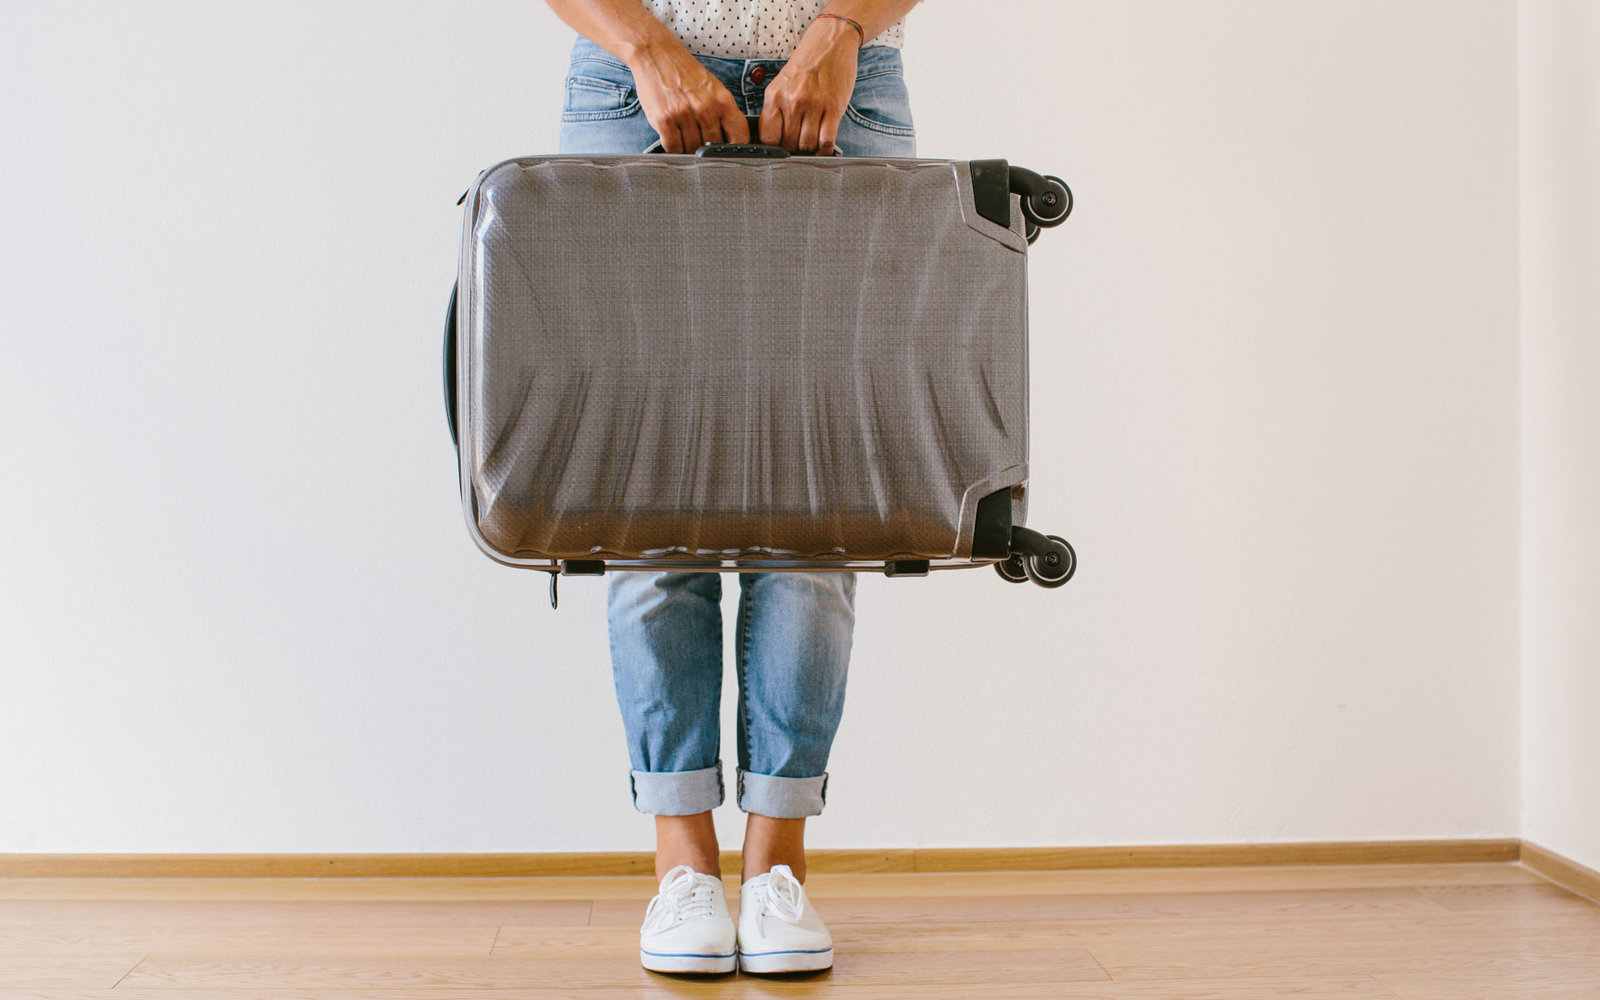 Nine Packing Hacks That Will Lighten Your Suitcase